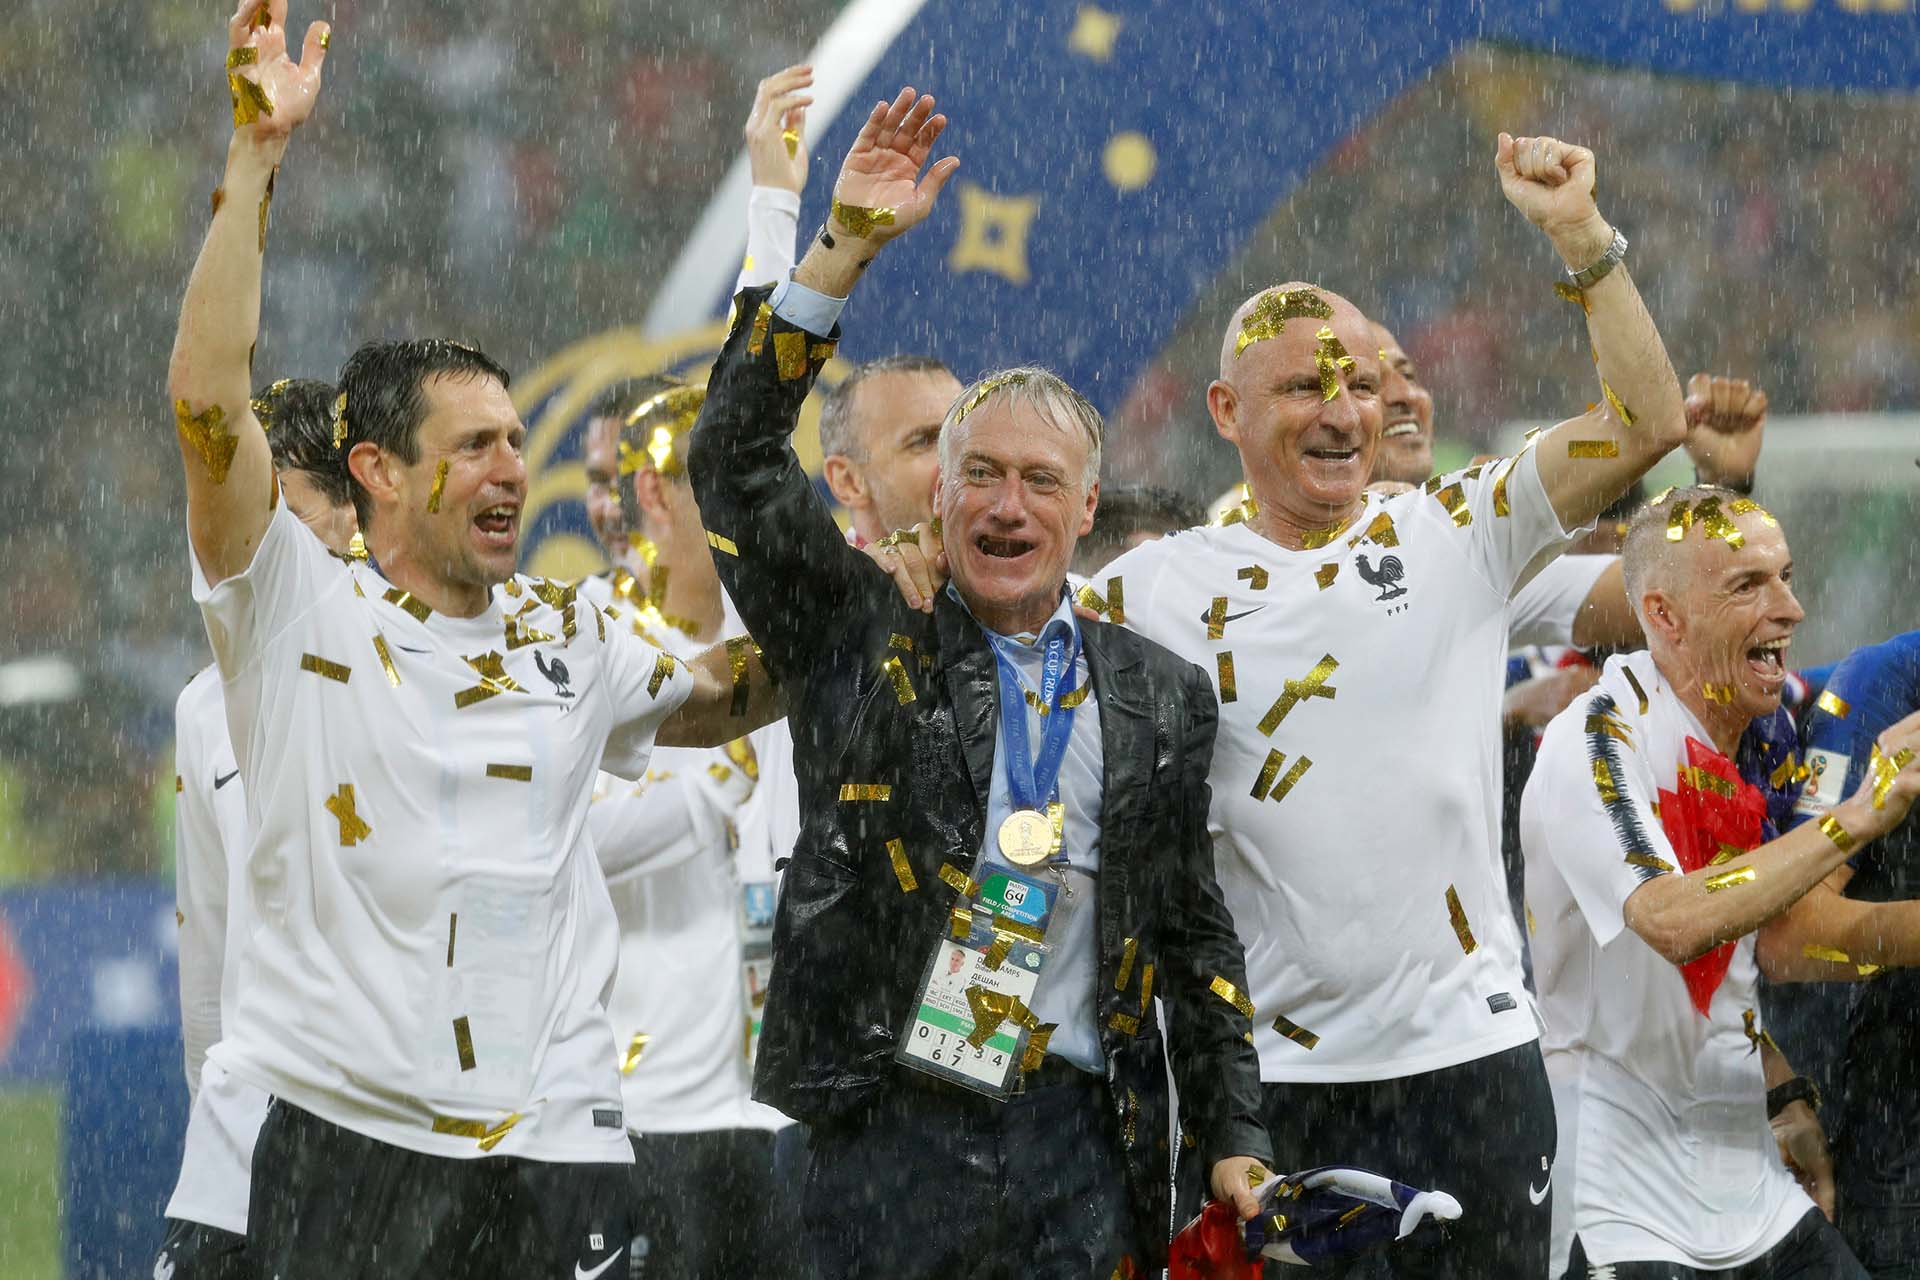 Deschamps, entrenador del campeón